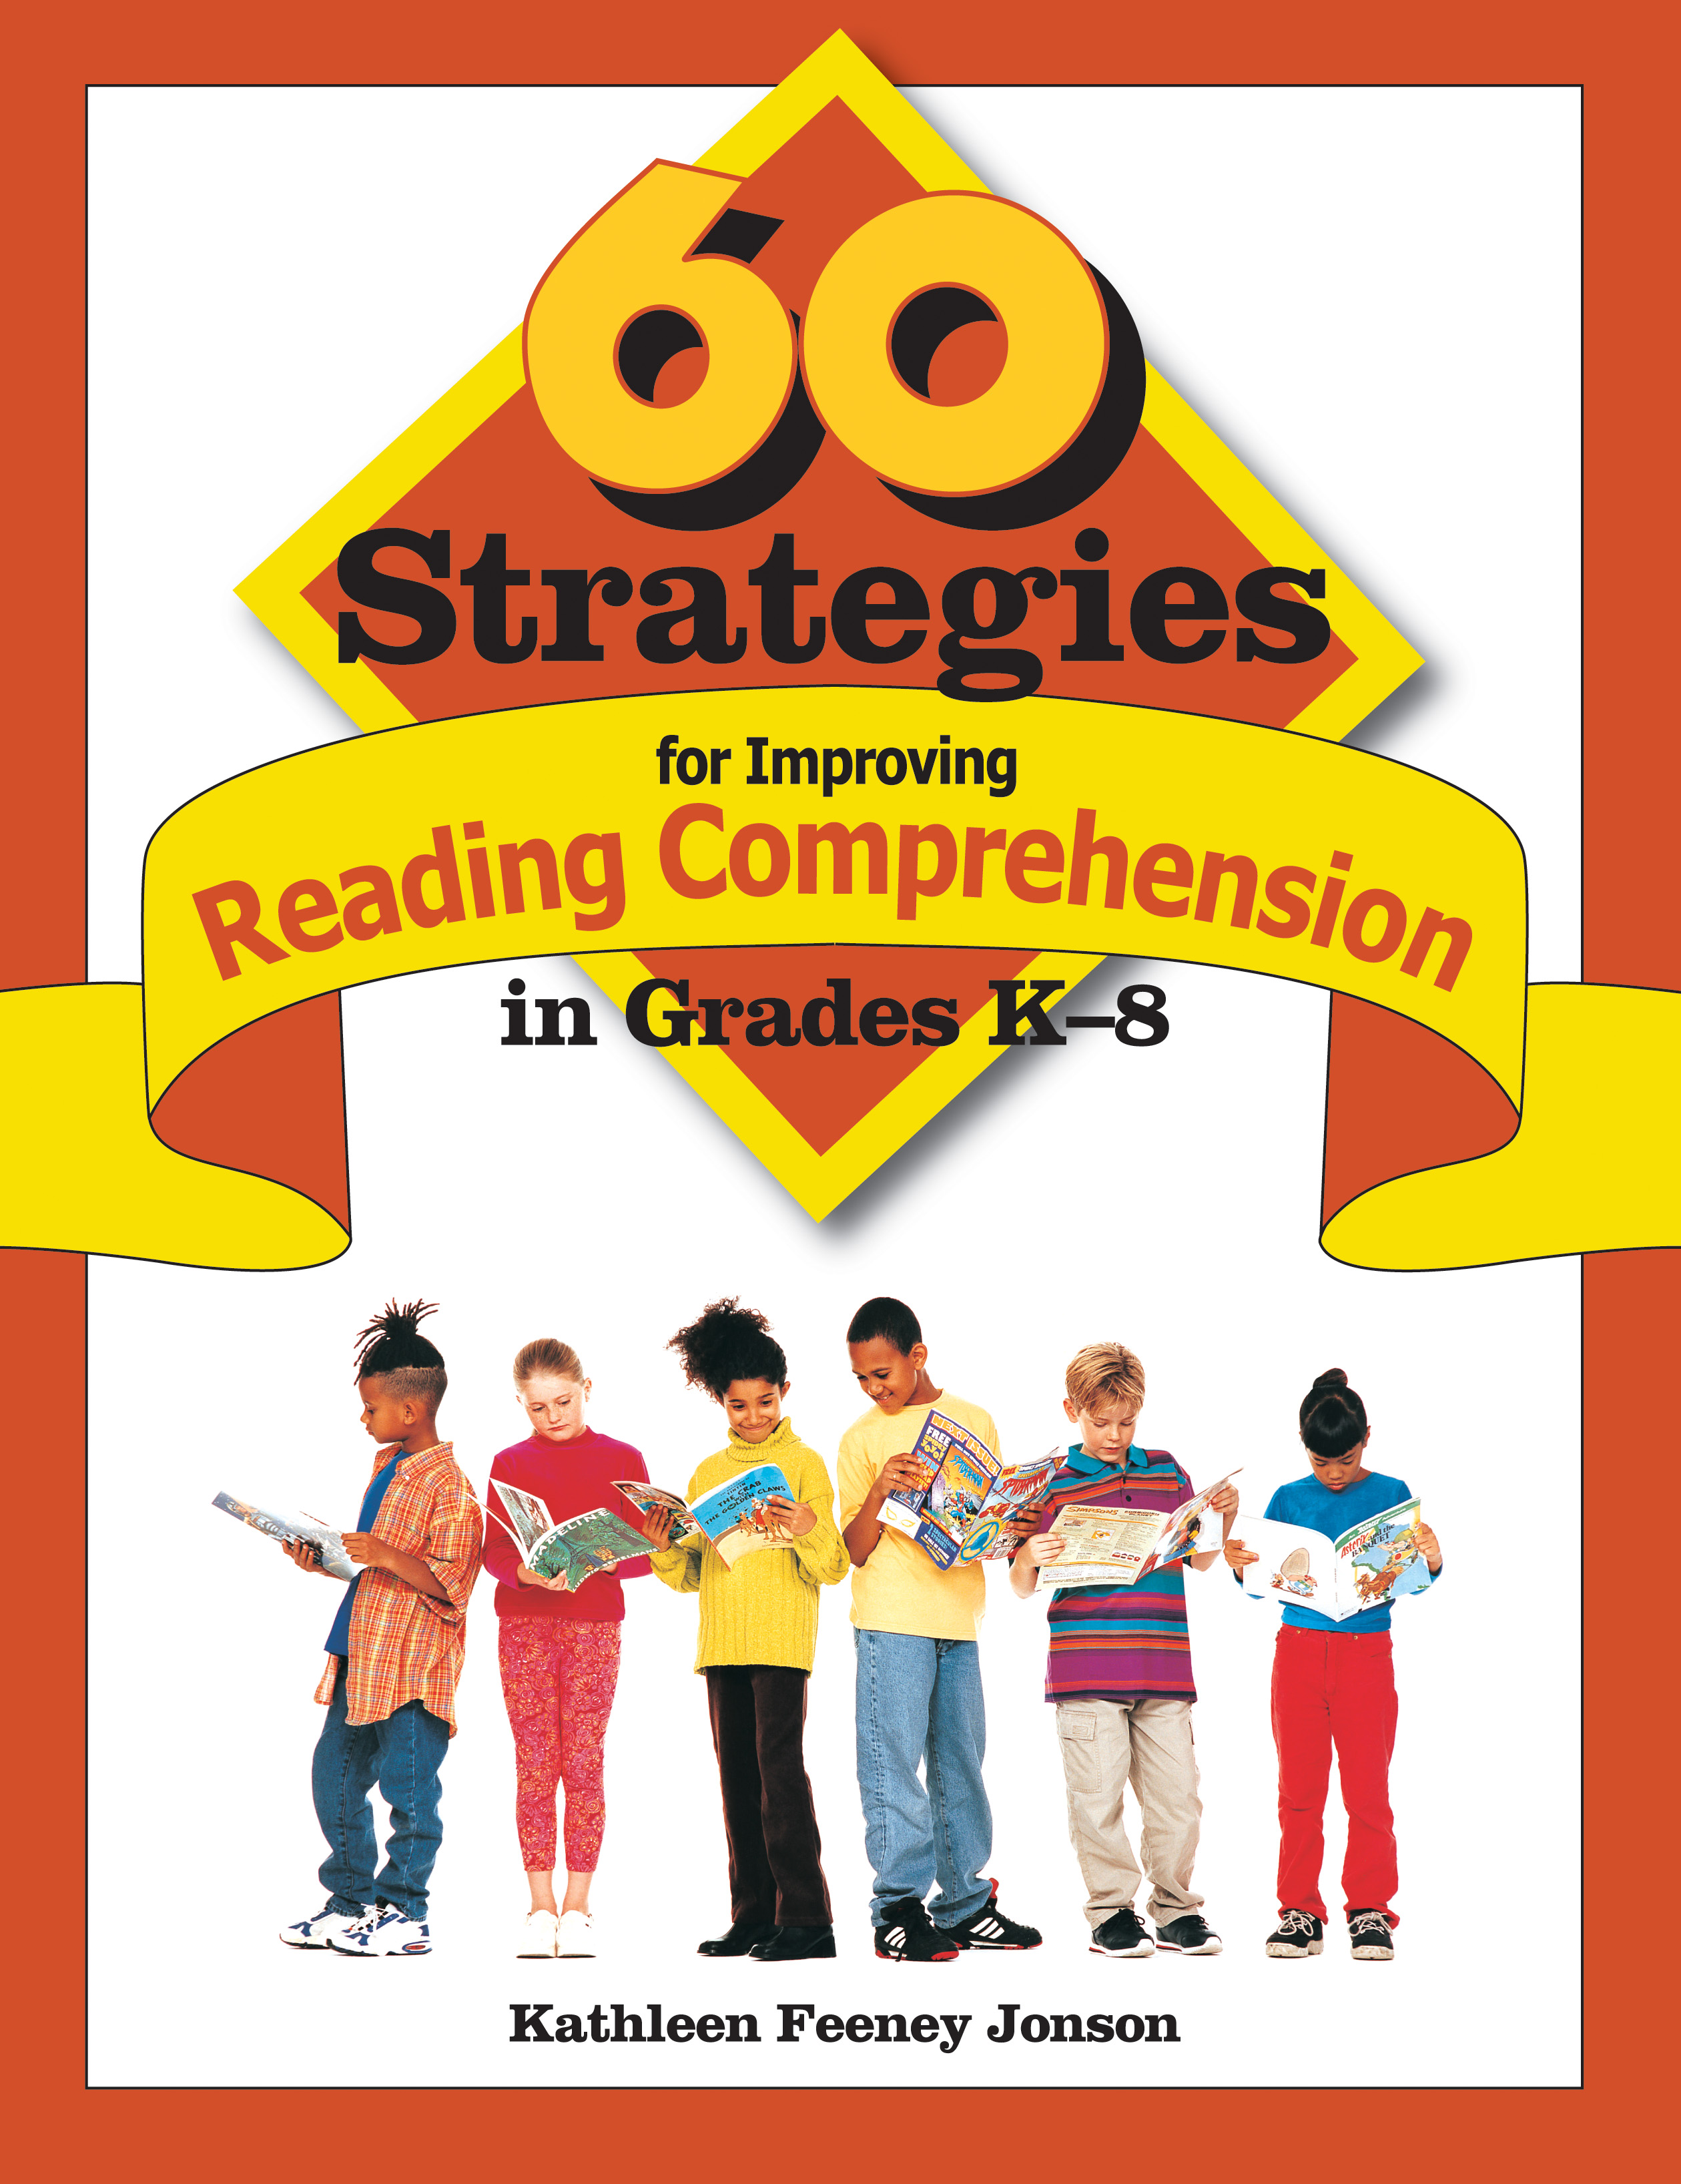 60 Strategies for Improving Reading Comprehension in Grades K-8